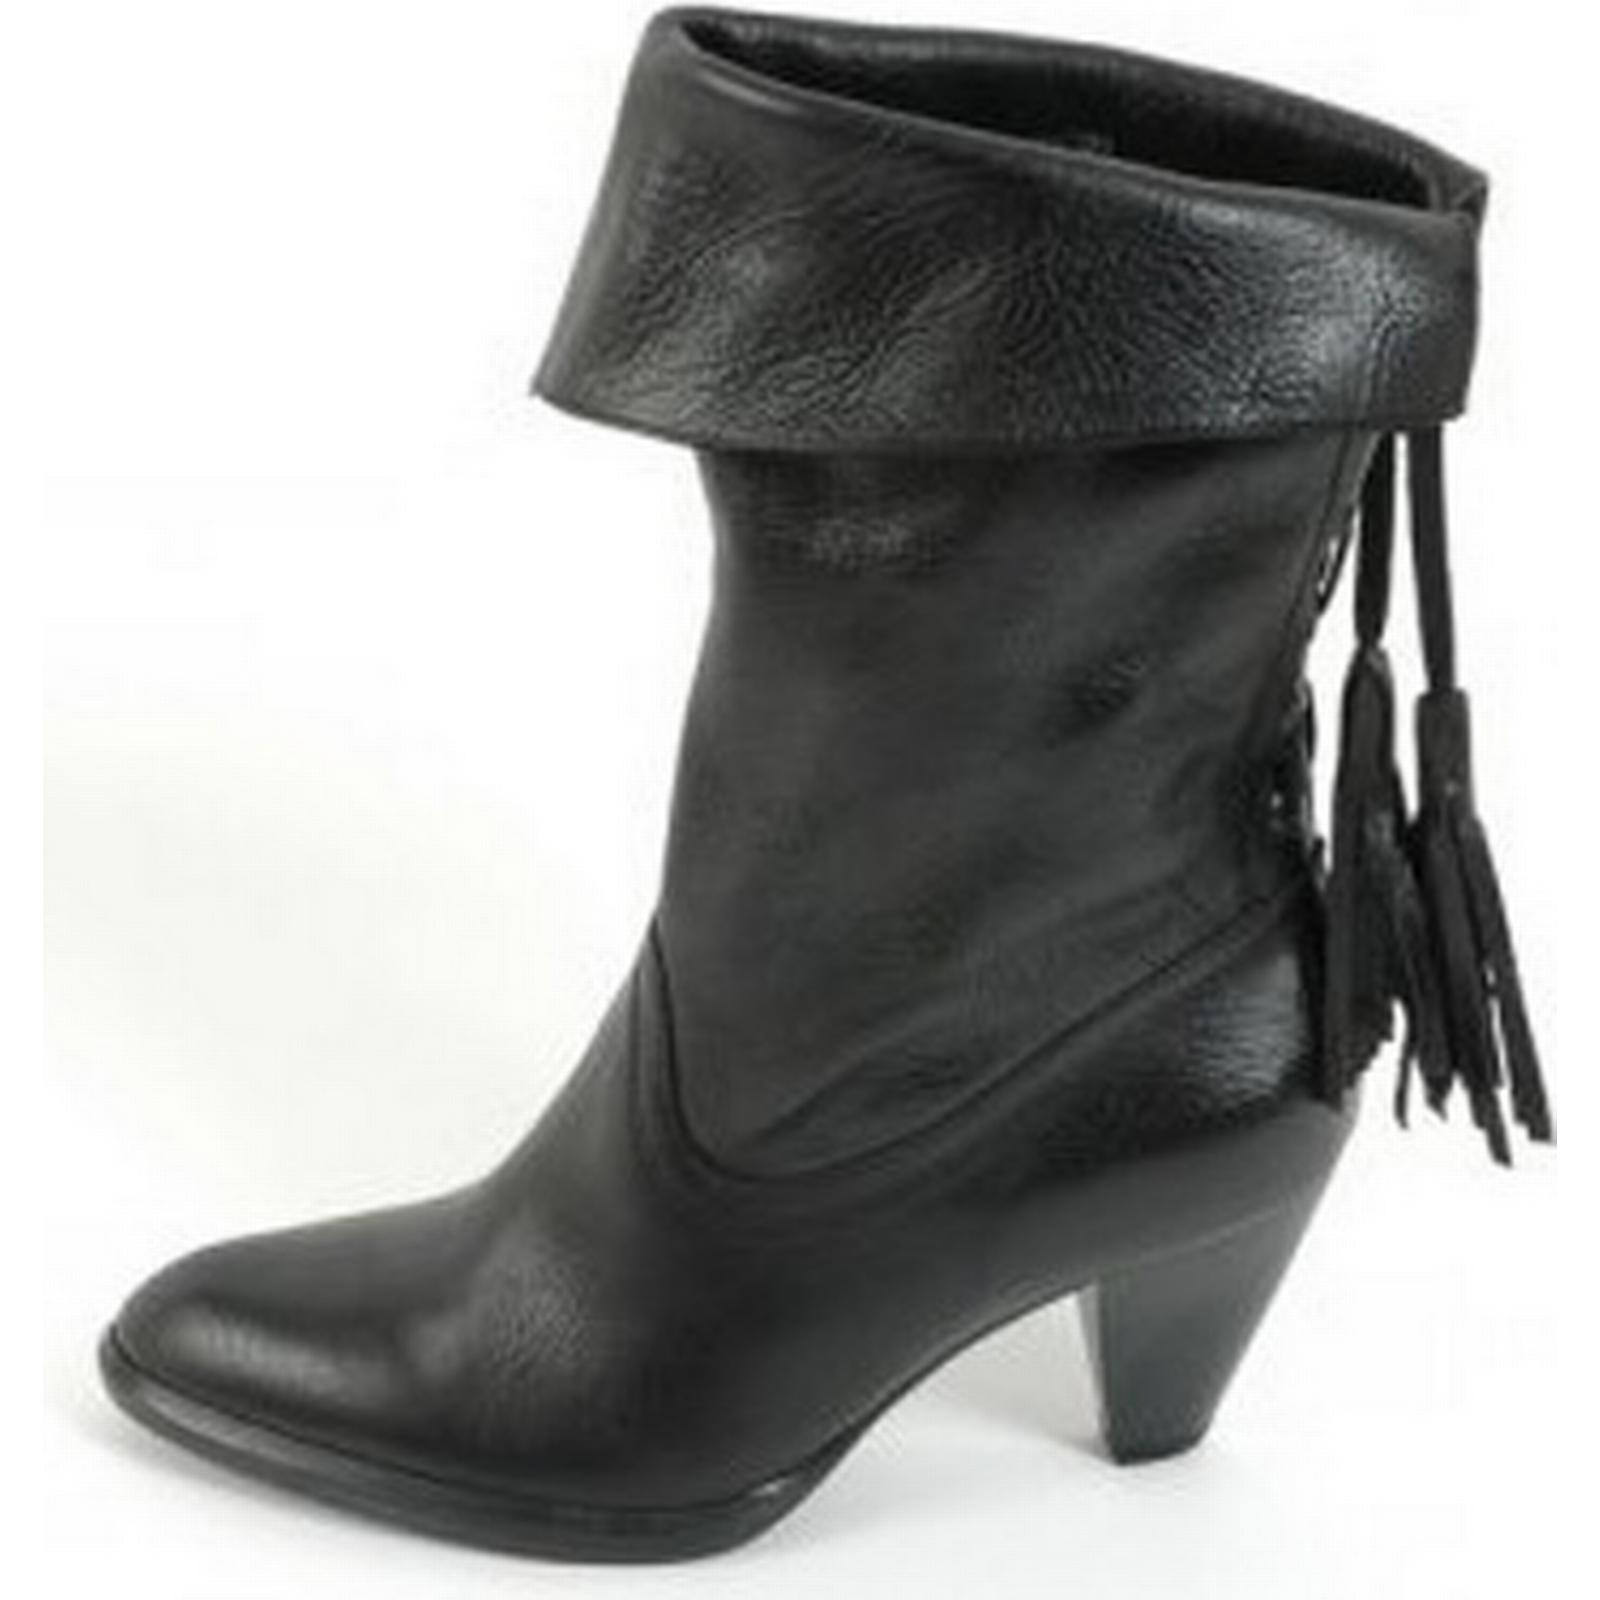 Peter Kaiser Liane Leather Leather Liane Short Boots with Tassle Feature  Size: 2, C 63dd51